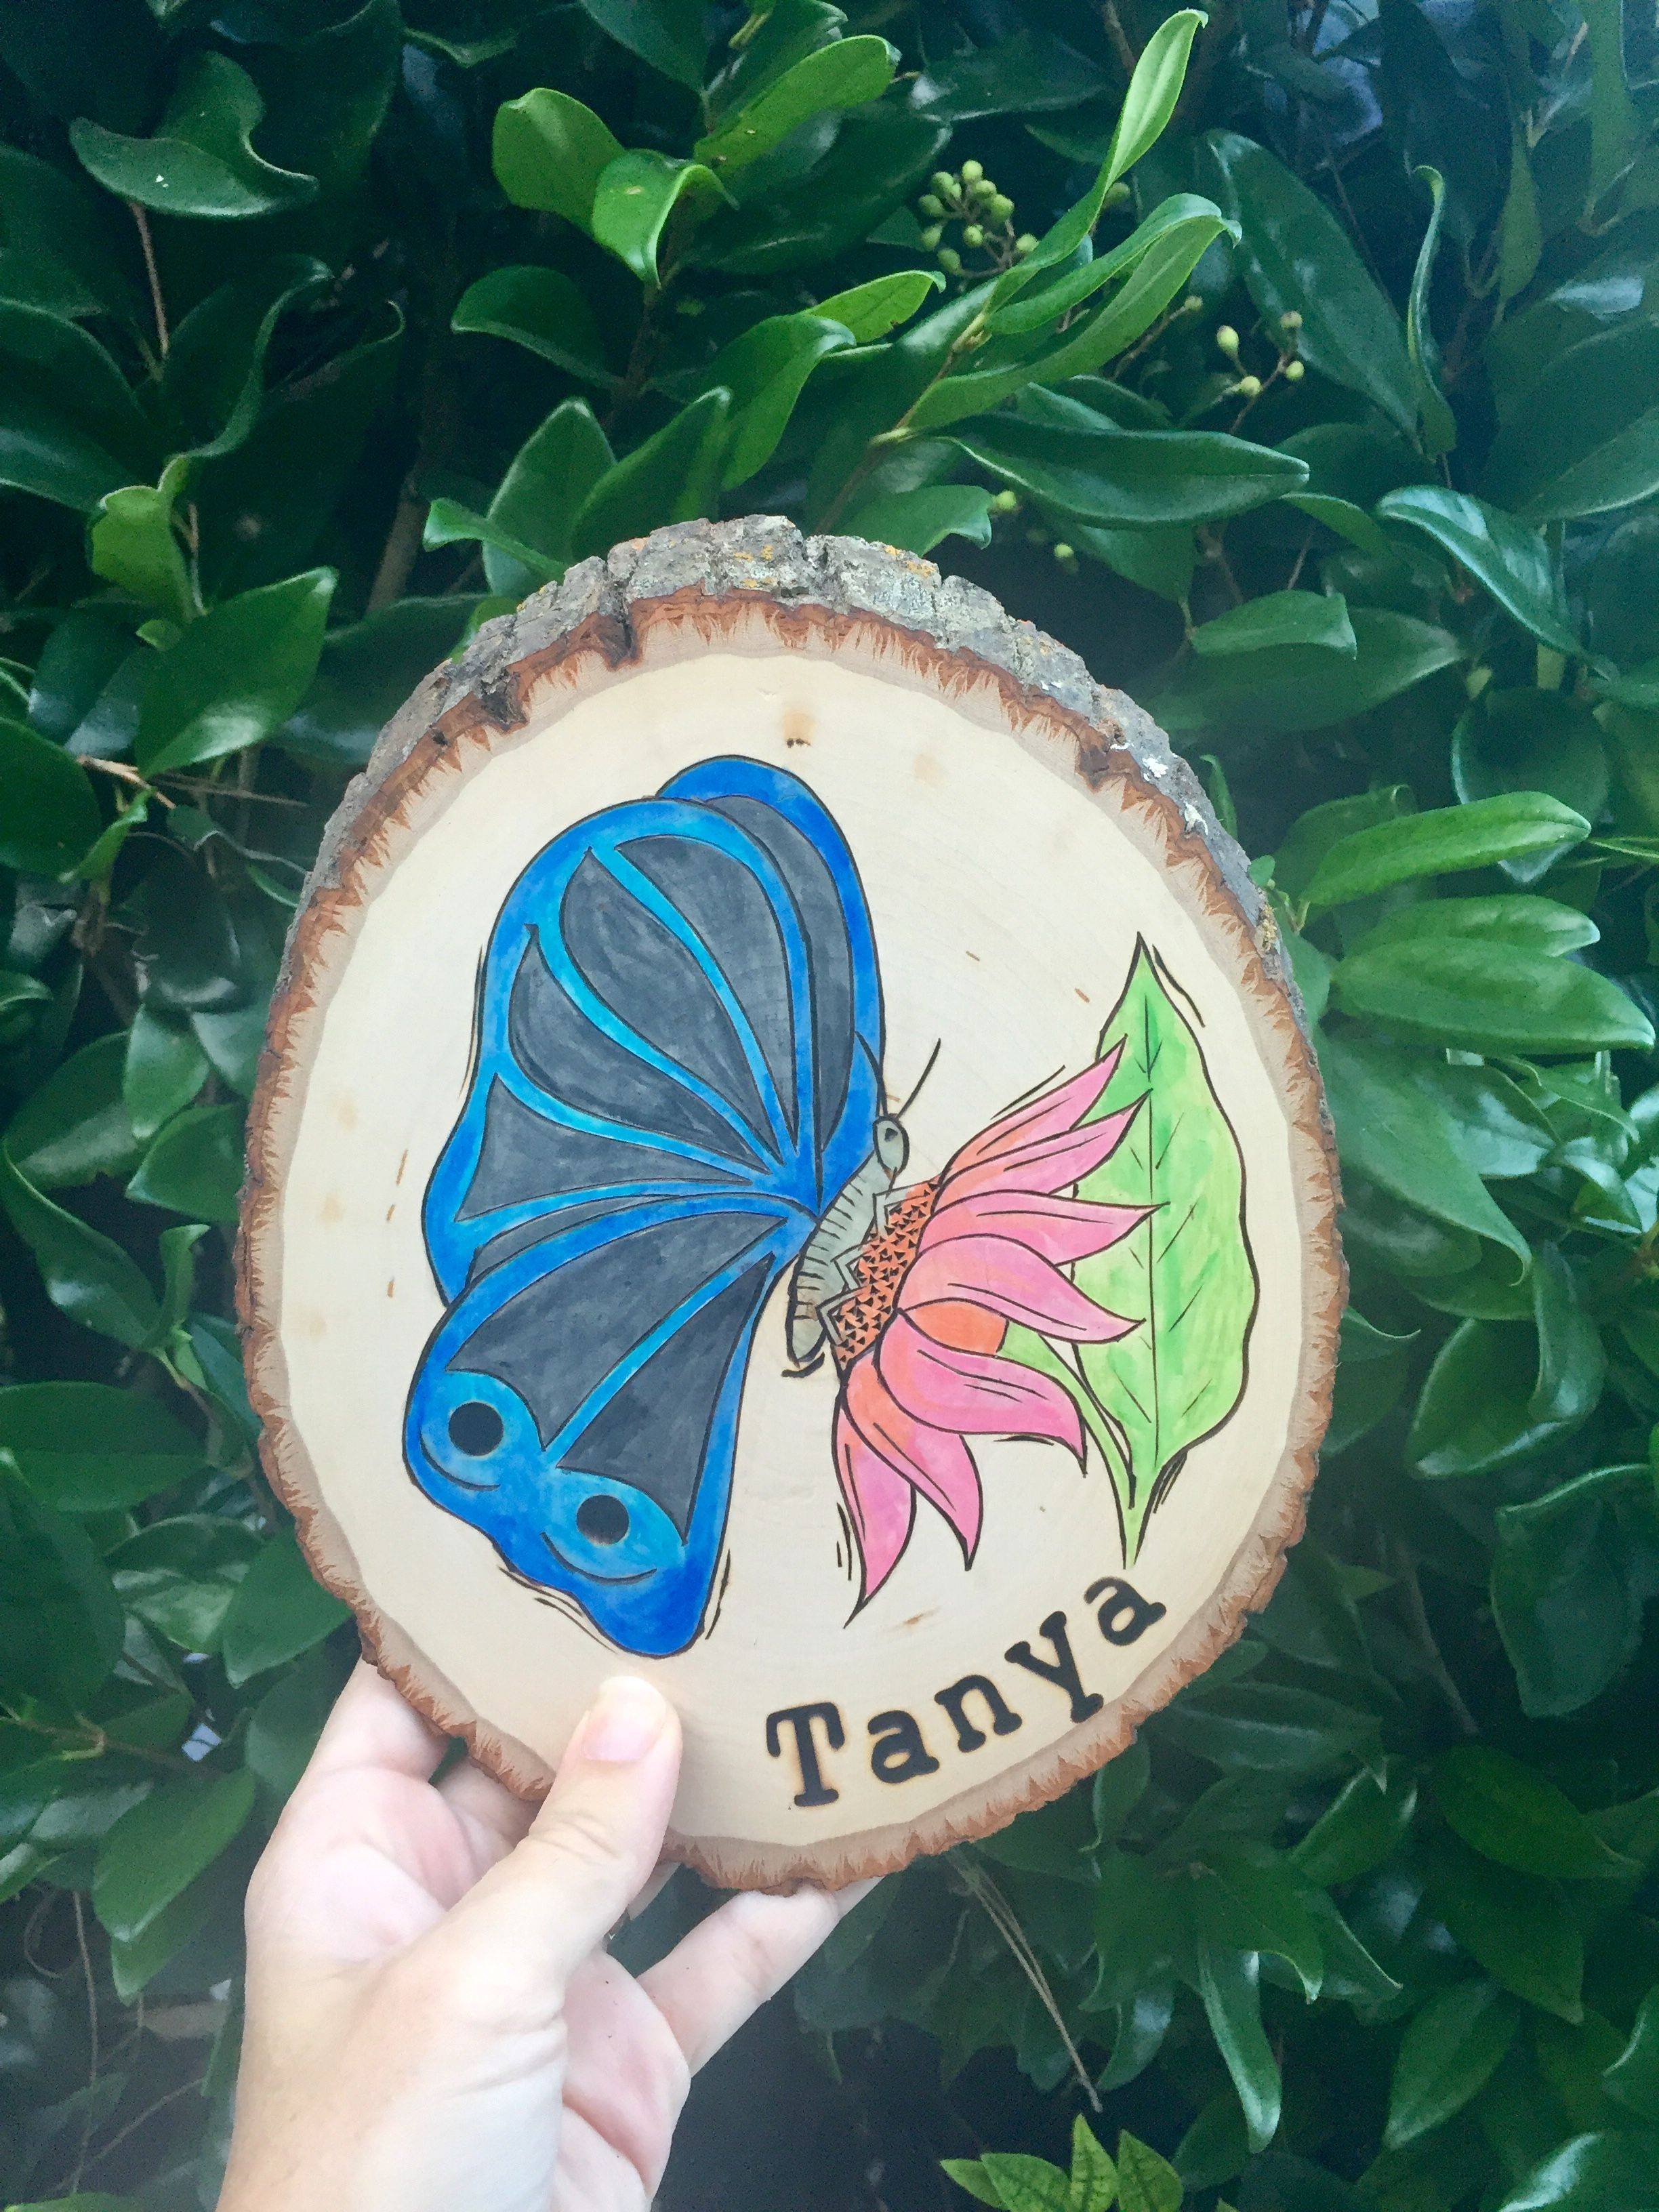 Handmade wood art with any kidus name and design element wood burned